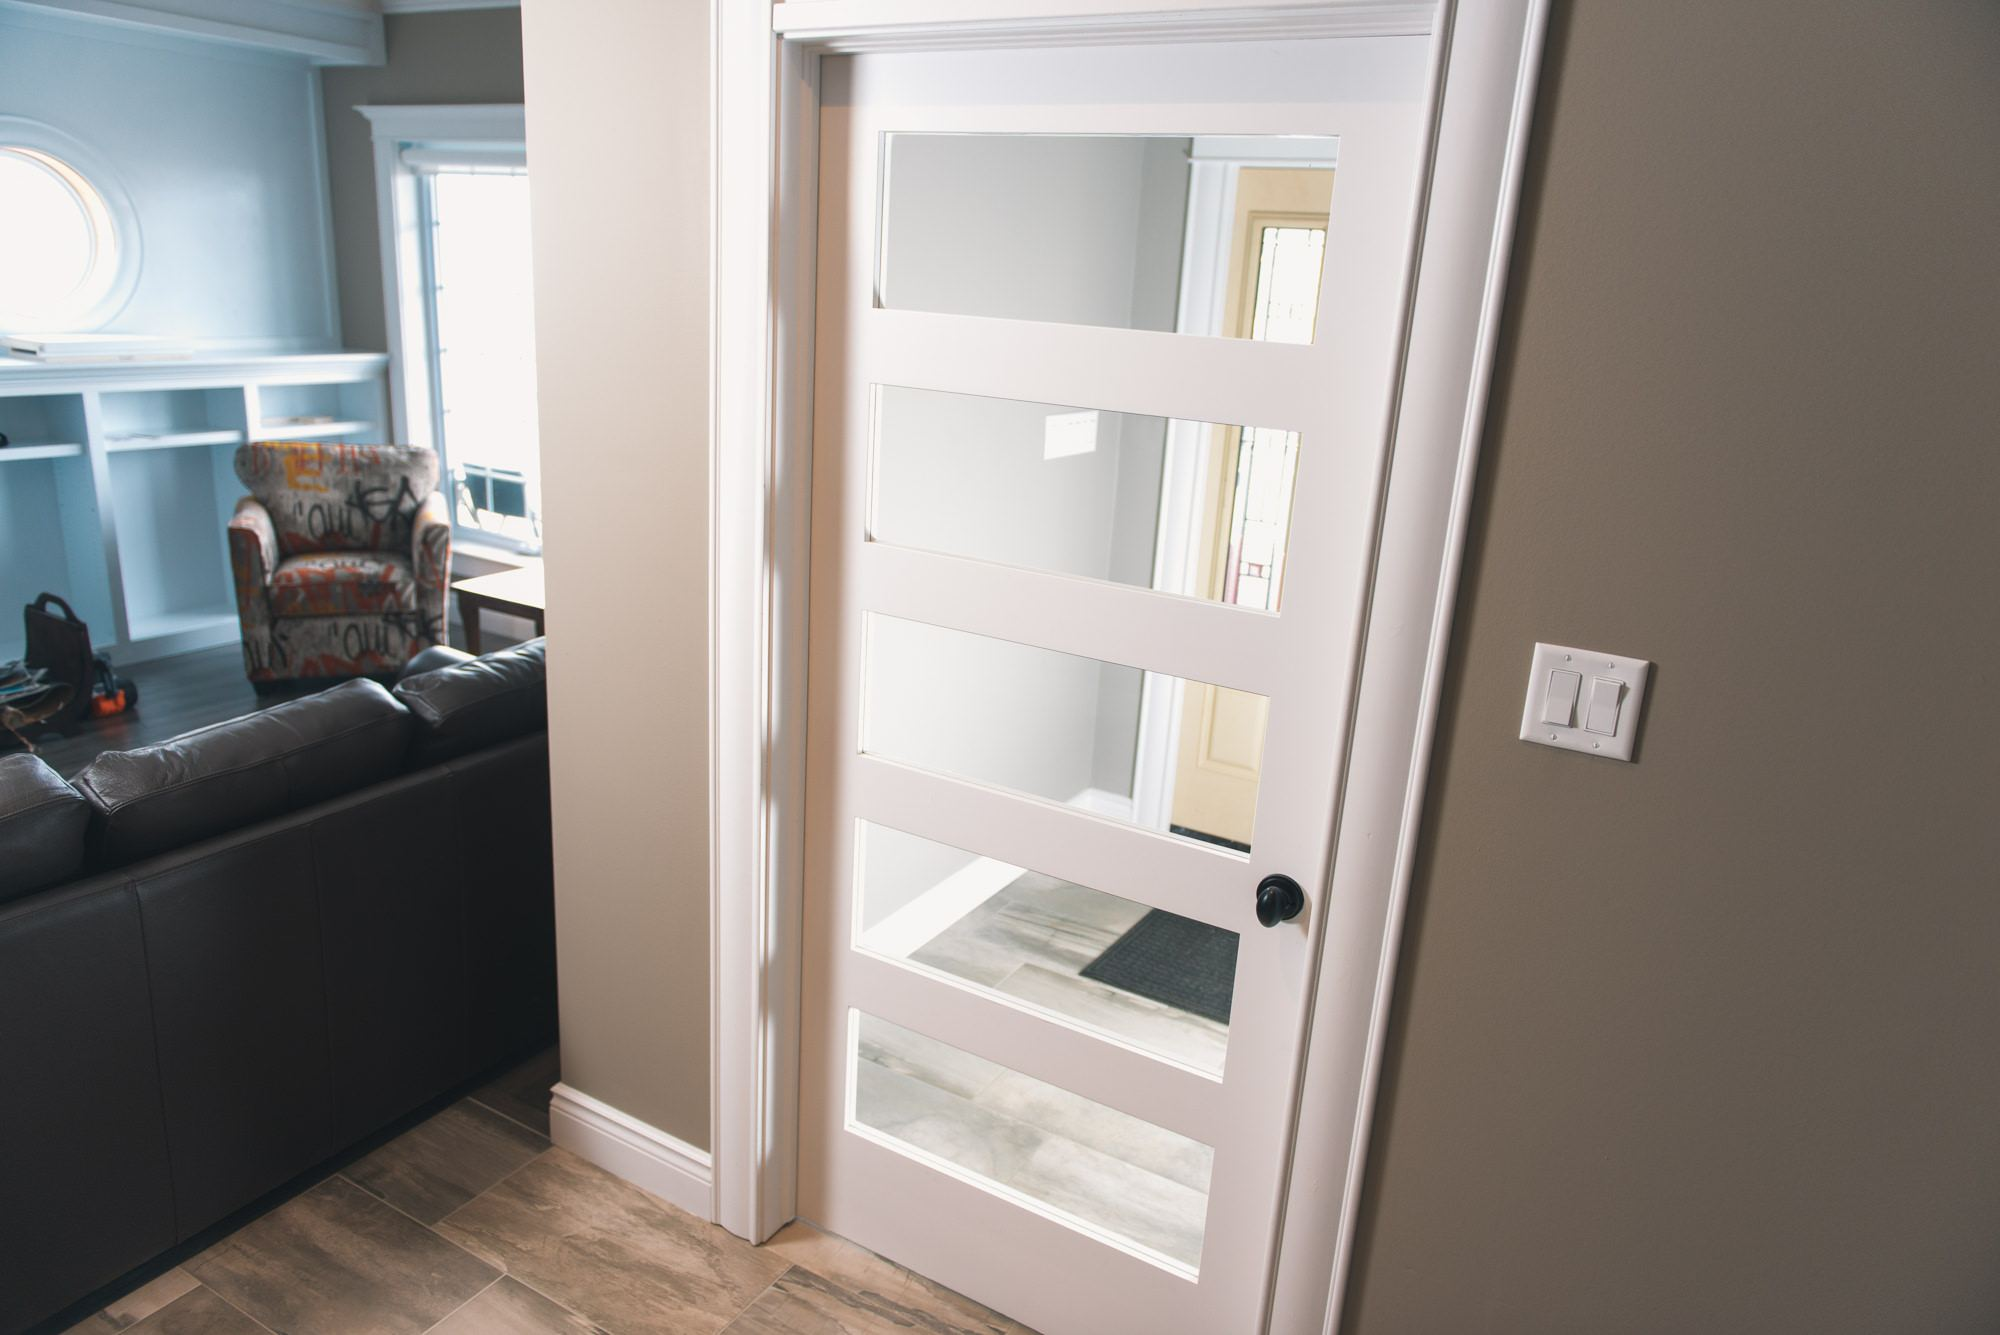 Etonnant 5 Panel Shaker Door With Clear Glass With Baseboard And Casing